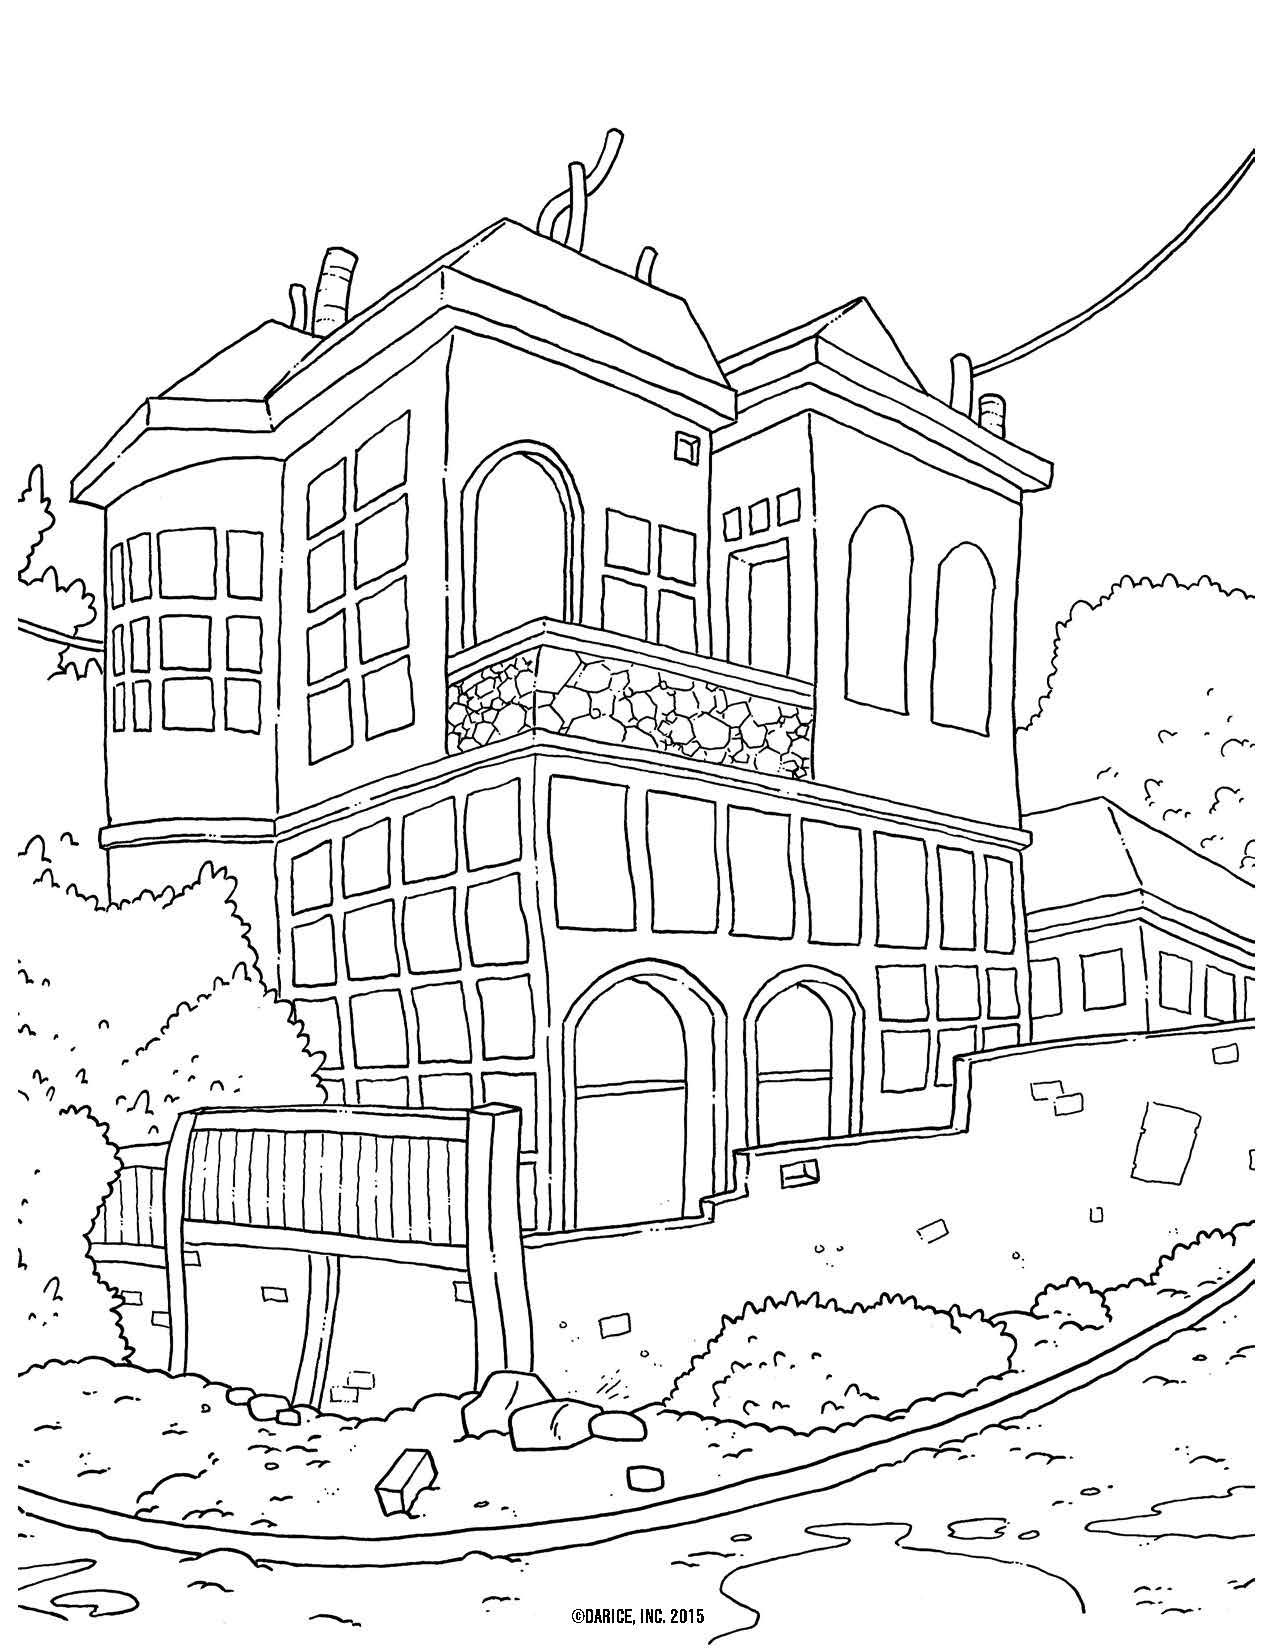 Free Coloring Pages Bird Houses. 9 Free Printable Adult Coloring Pages  Pat Catan s Blog Paper